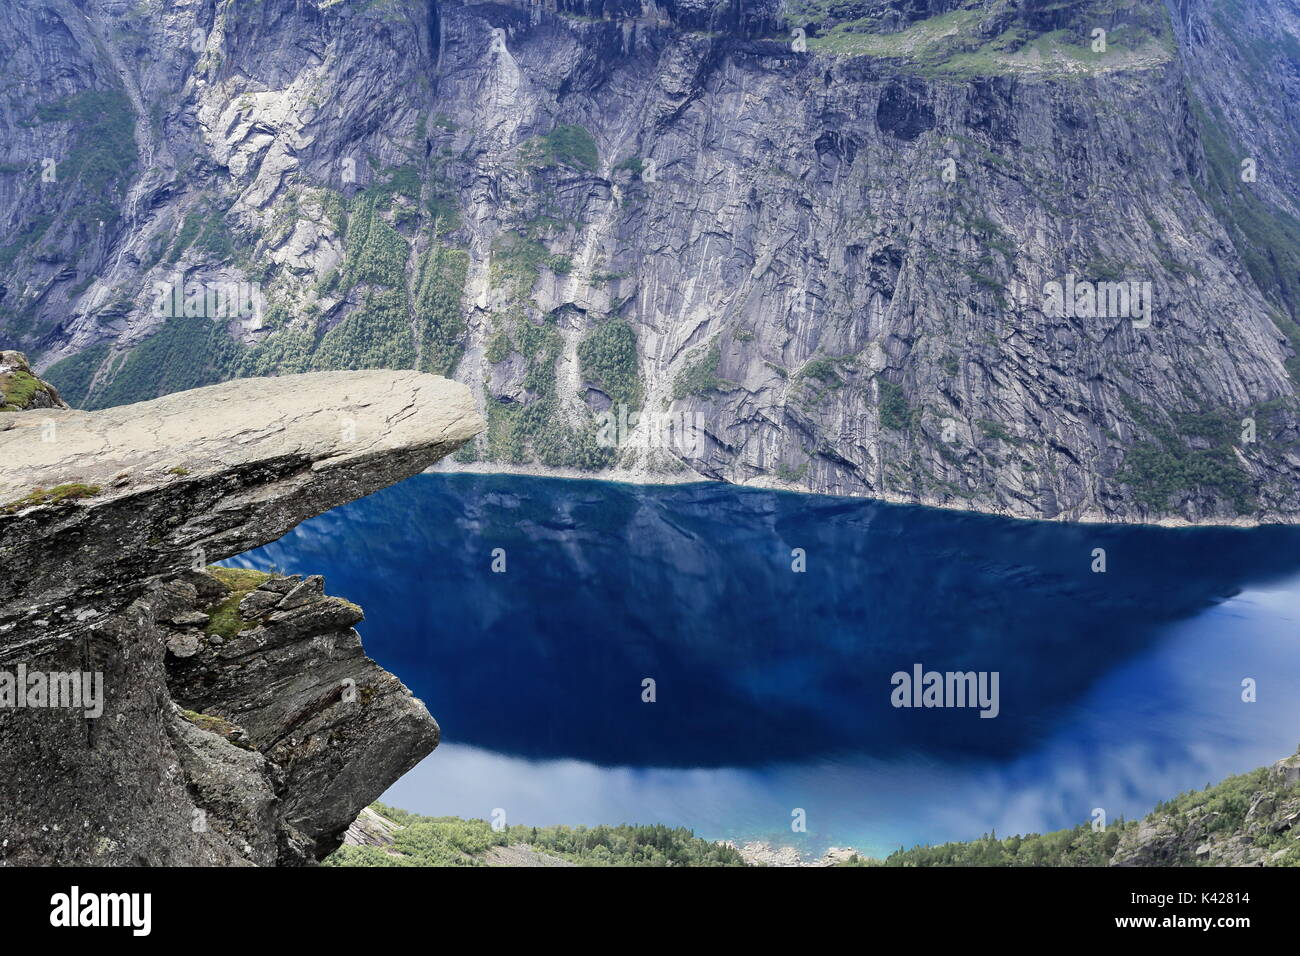 Trolltunga rock formation in Norway - Stock Image